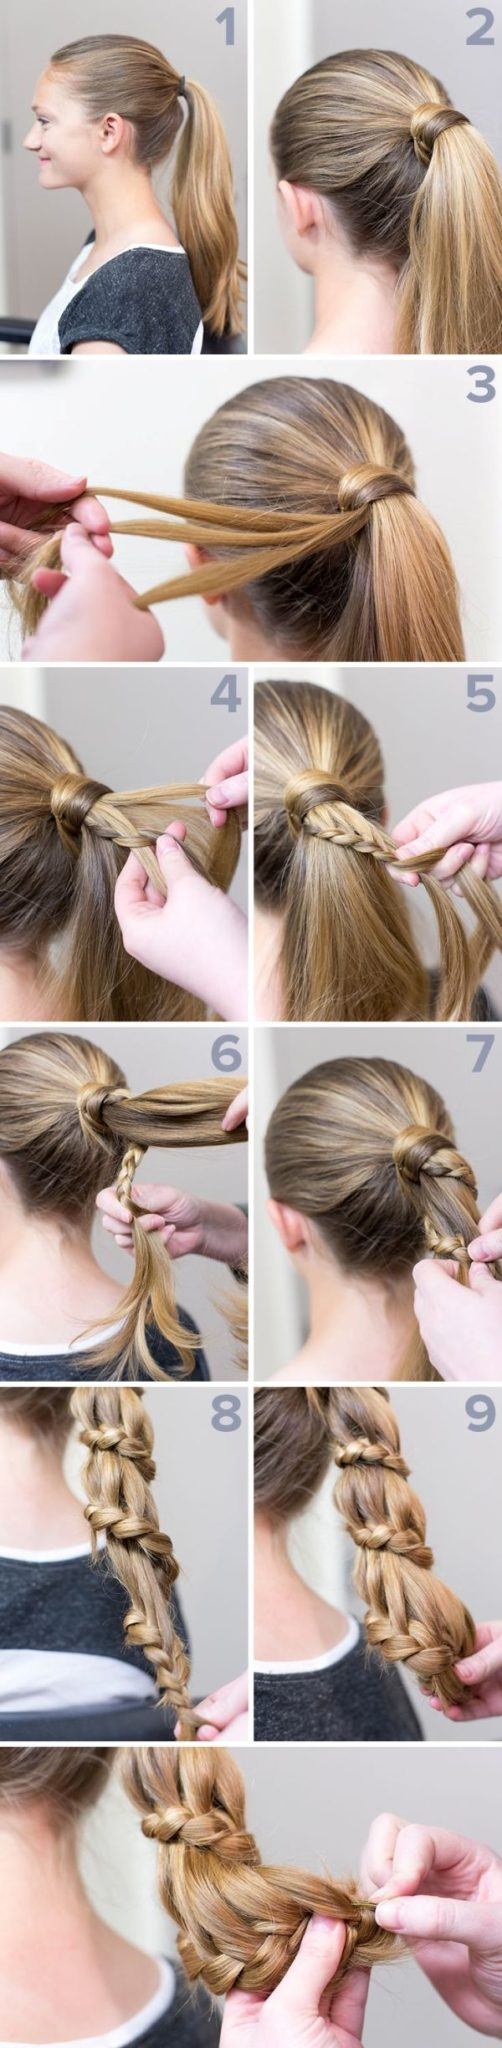 Prom hairstyle step by step guide prom hairstyle step by step